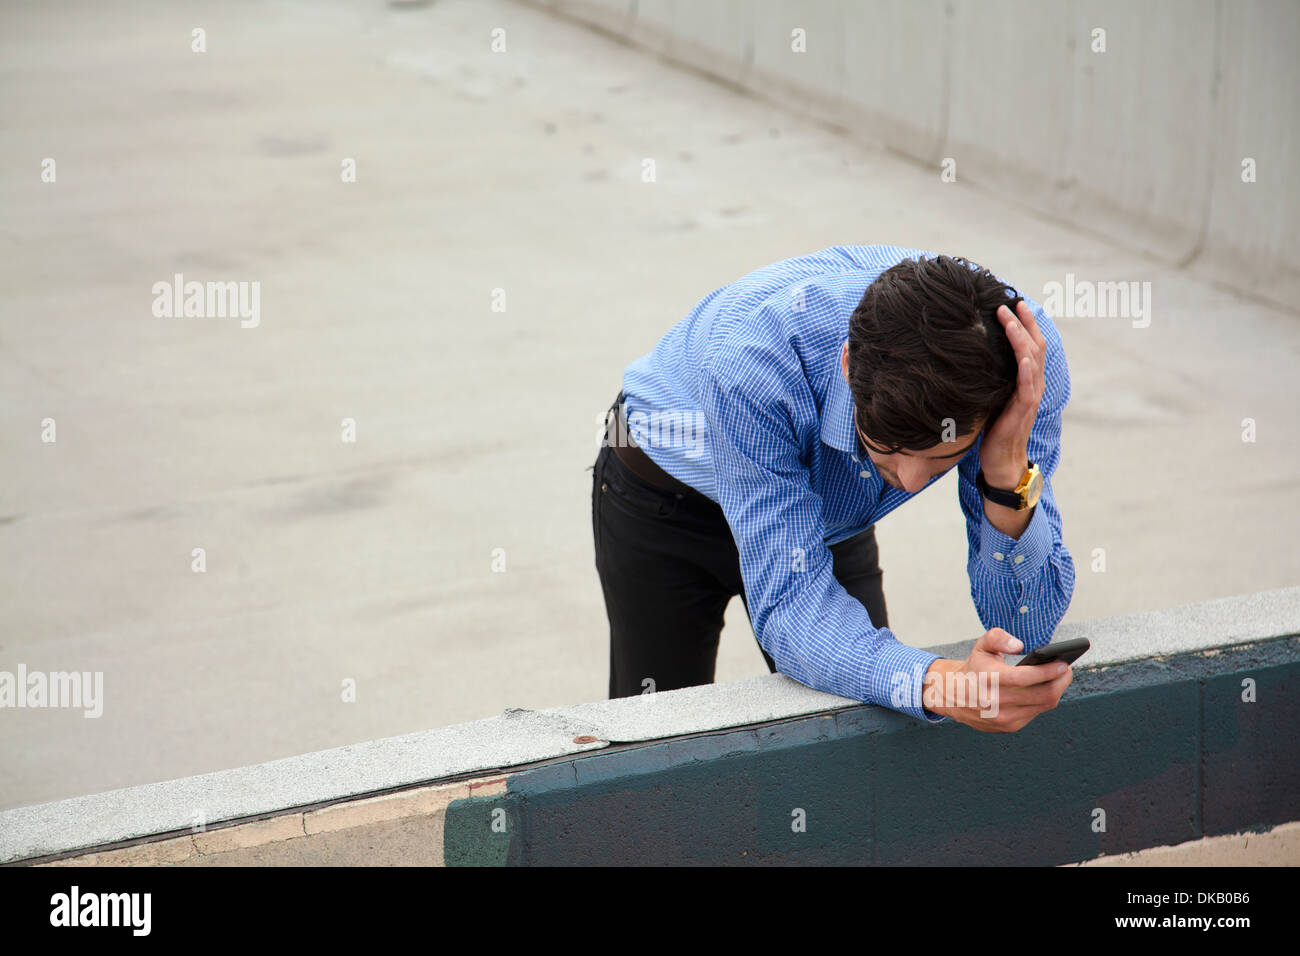 Anxieux young man leaning on wall on city rooftop Photo Stock